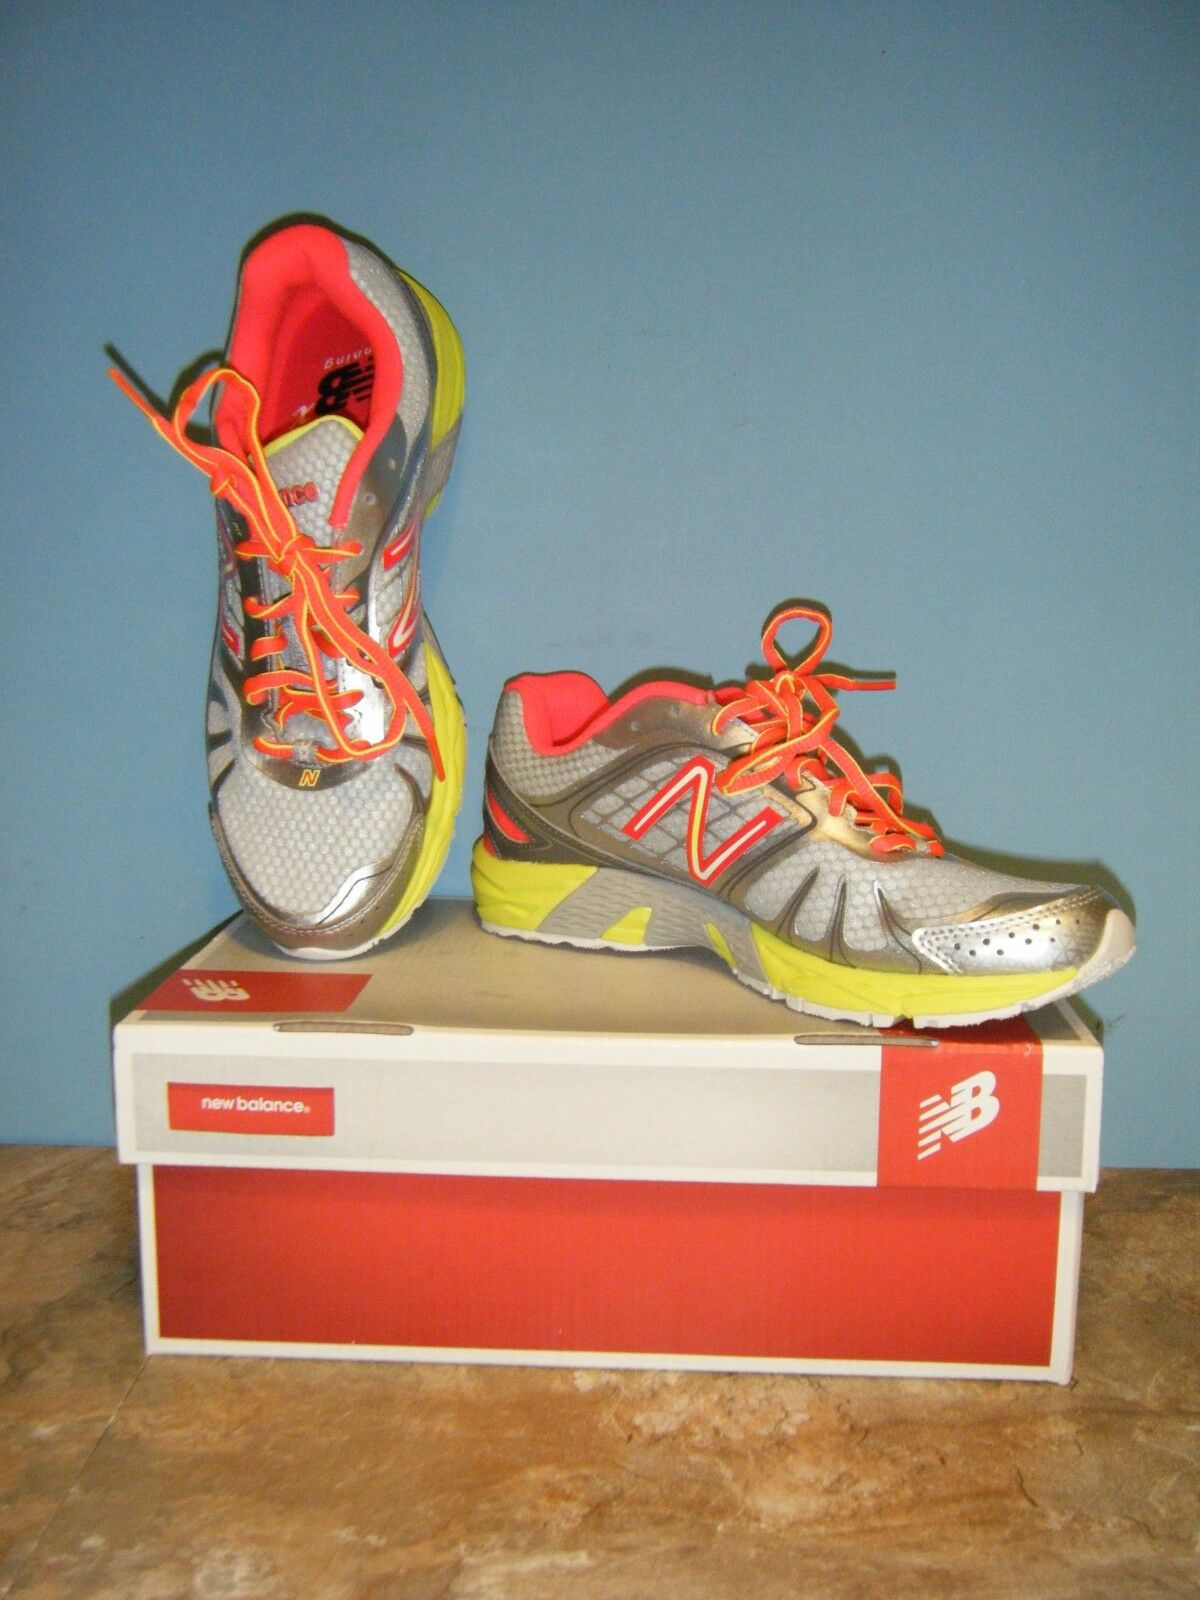 WOMAN'S NEW BALANCE RUNNING COURSE W770SY4 SIZES 7M NEW